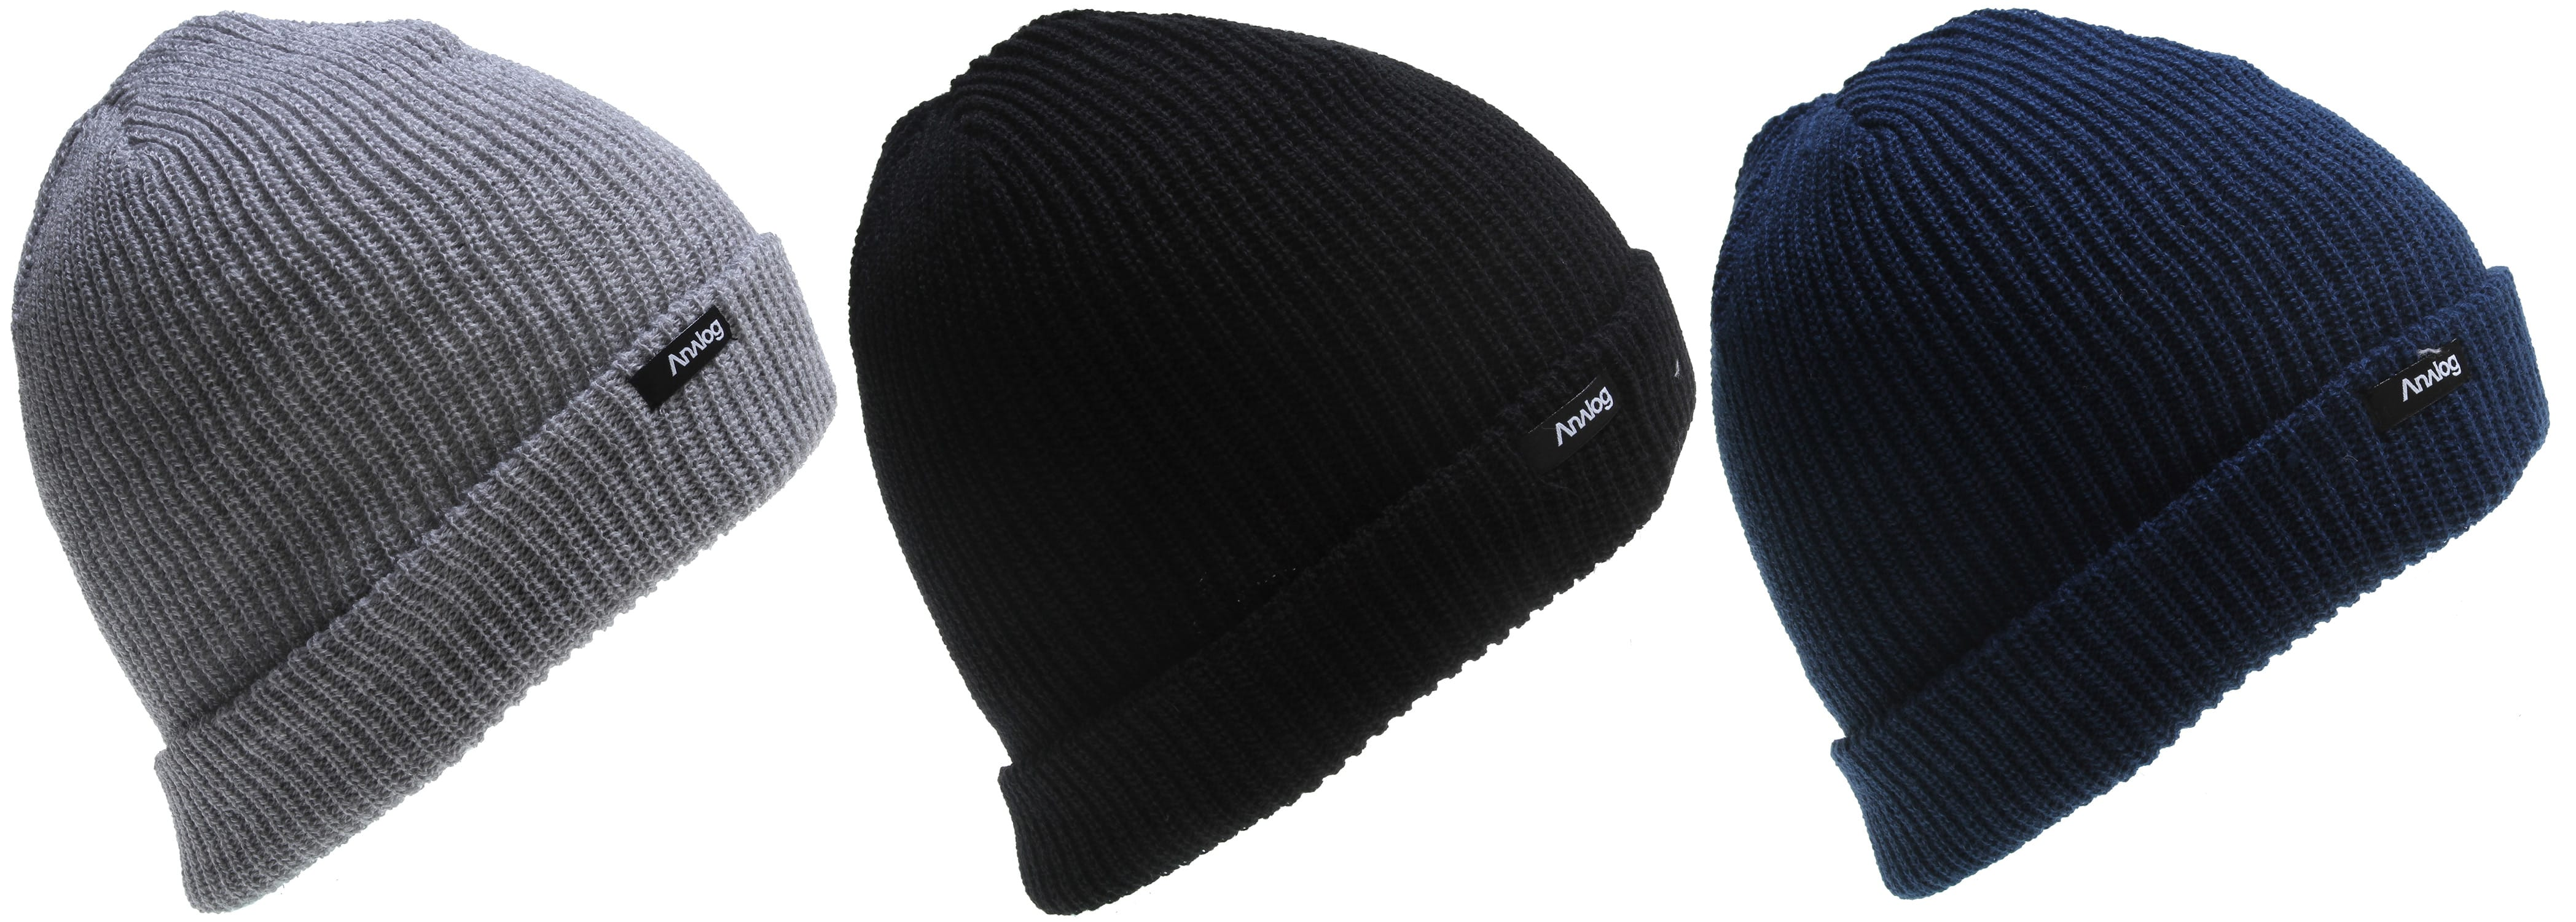 add1ece50f987 Analog Burglar 3 Pack Beanie - thumbnail 1